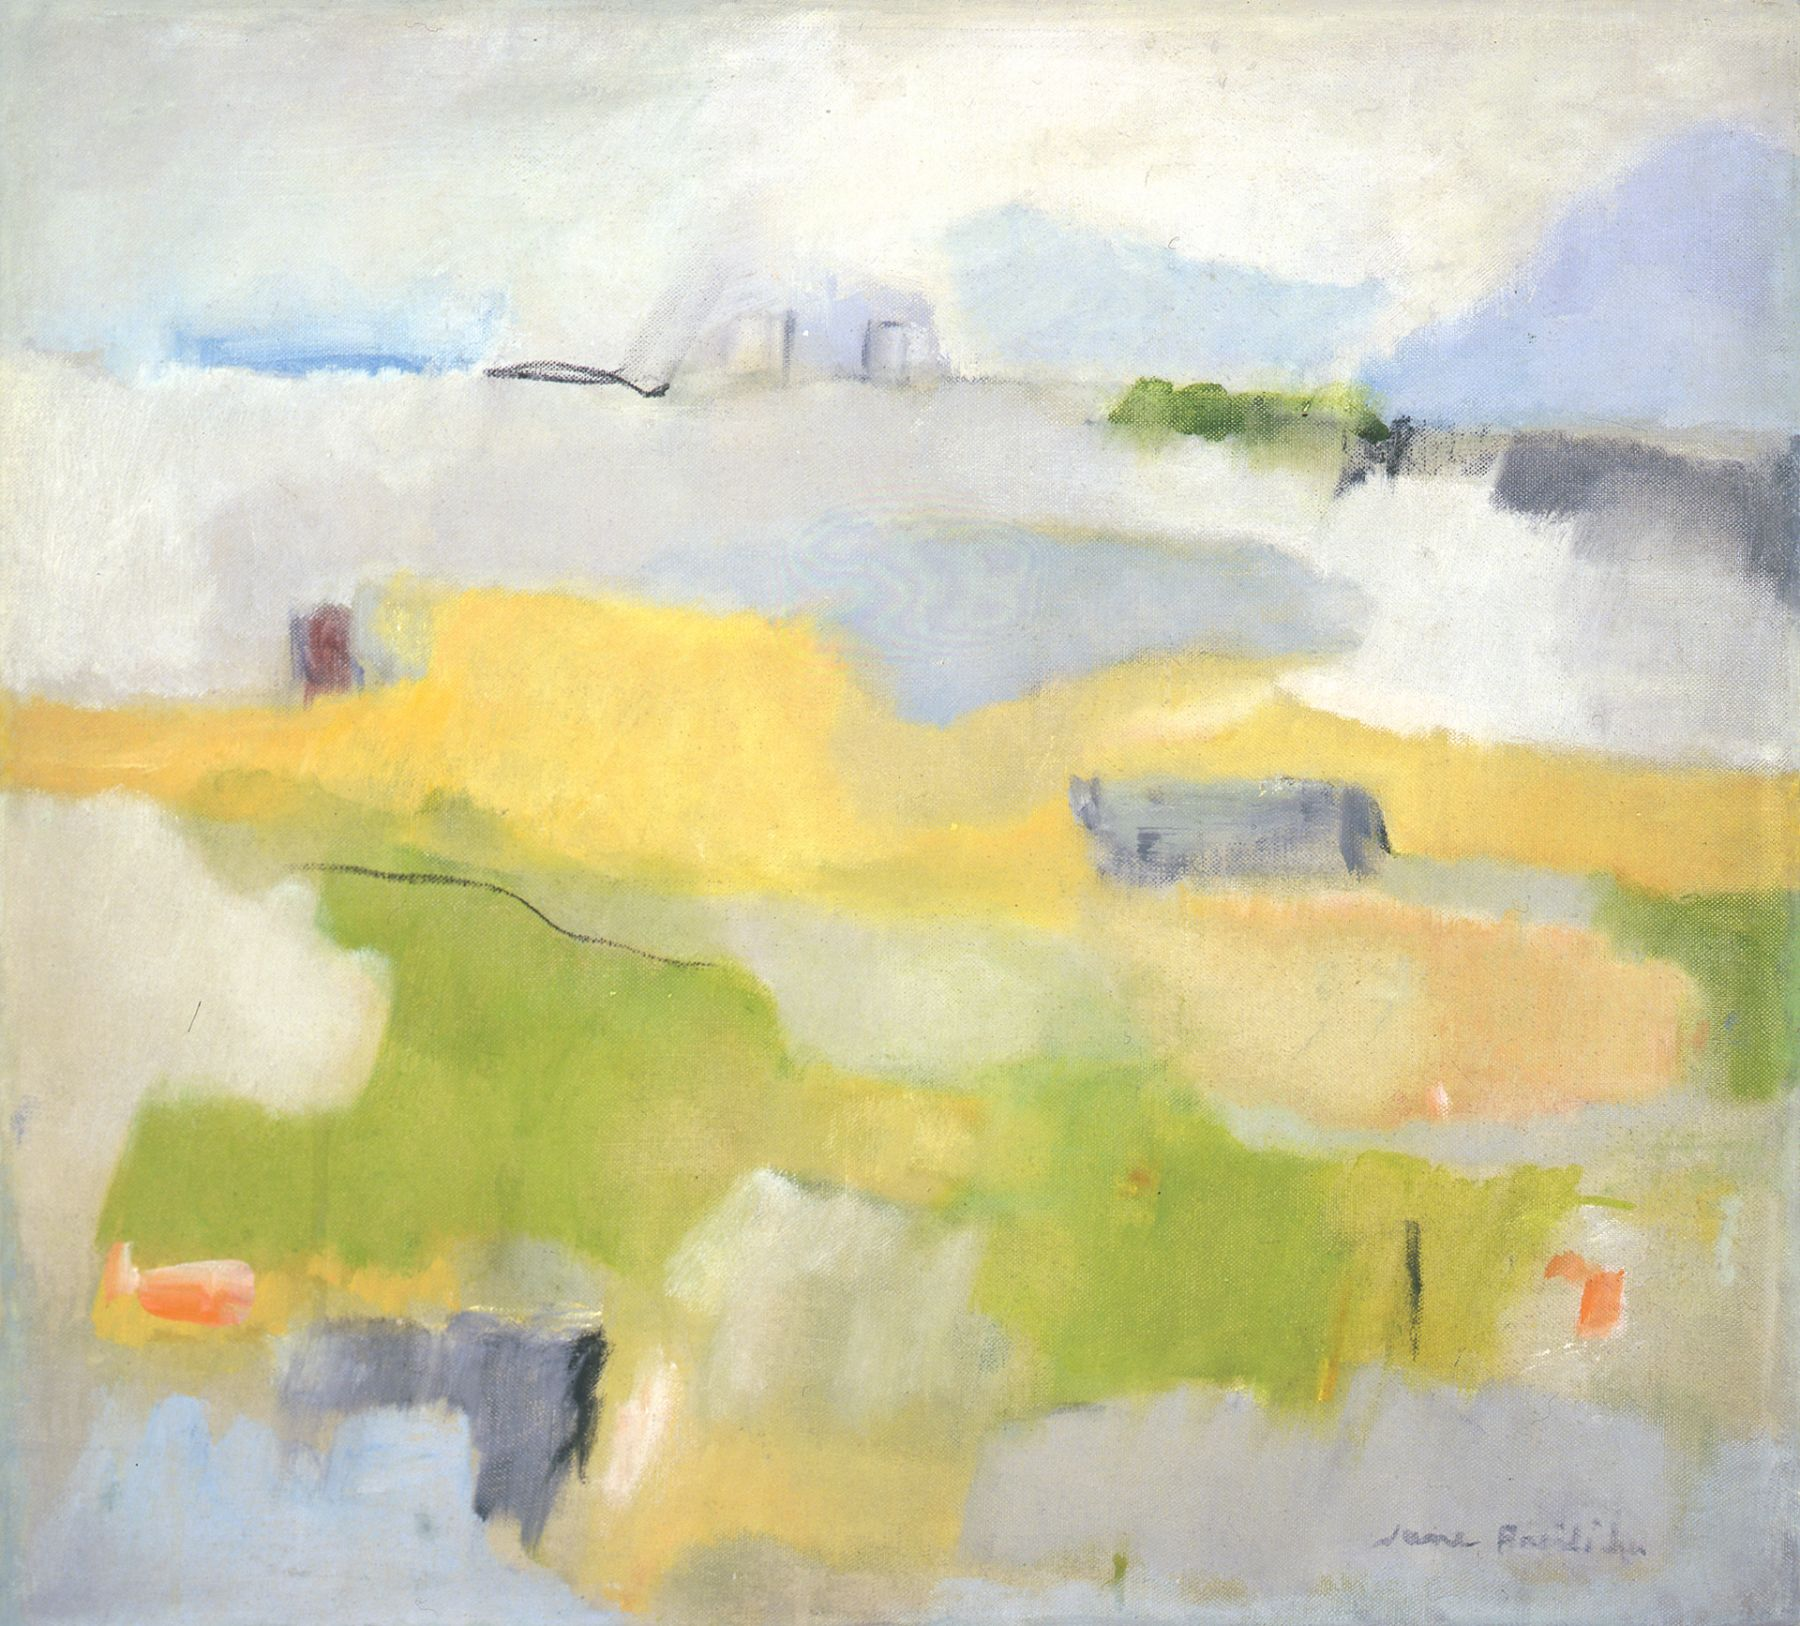 Landscape Abstraction